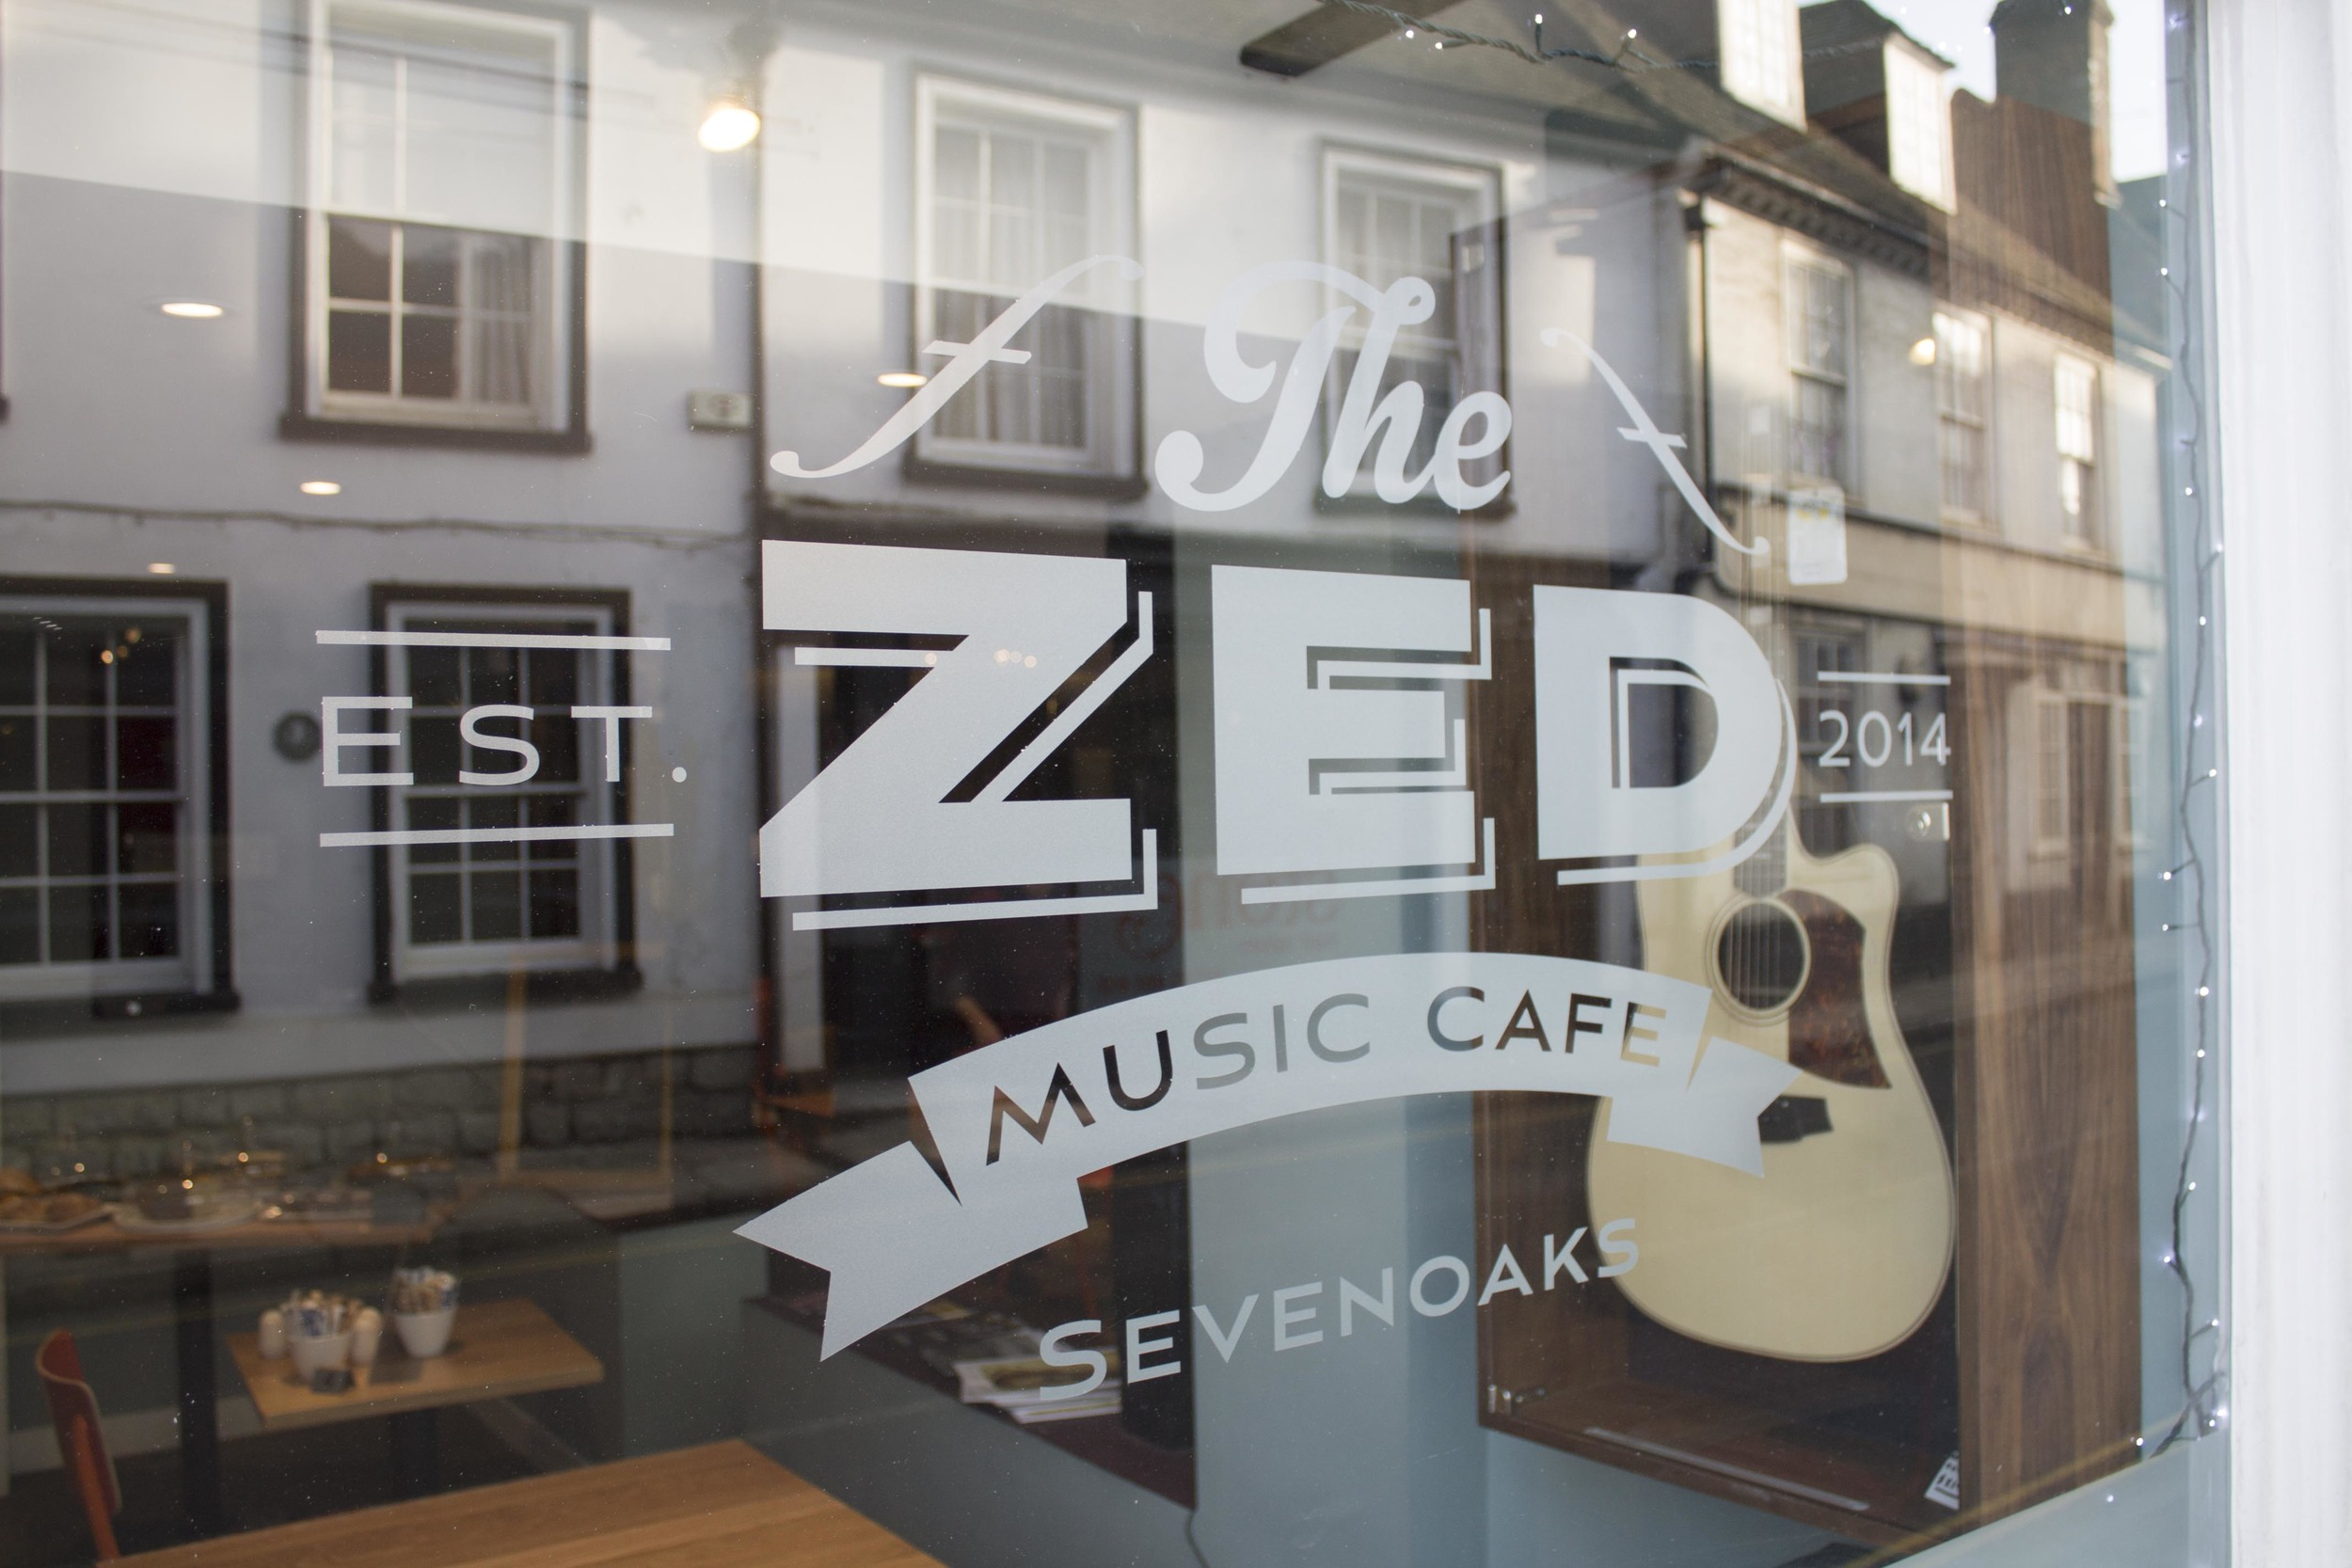 Zed Music Cafe Sevenoaks logo design and branding by Ditto branding agency, Kent